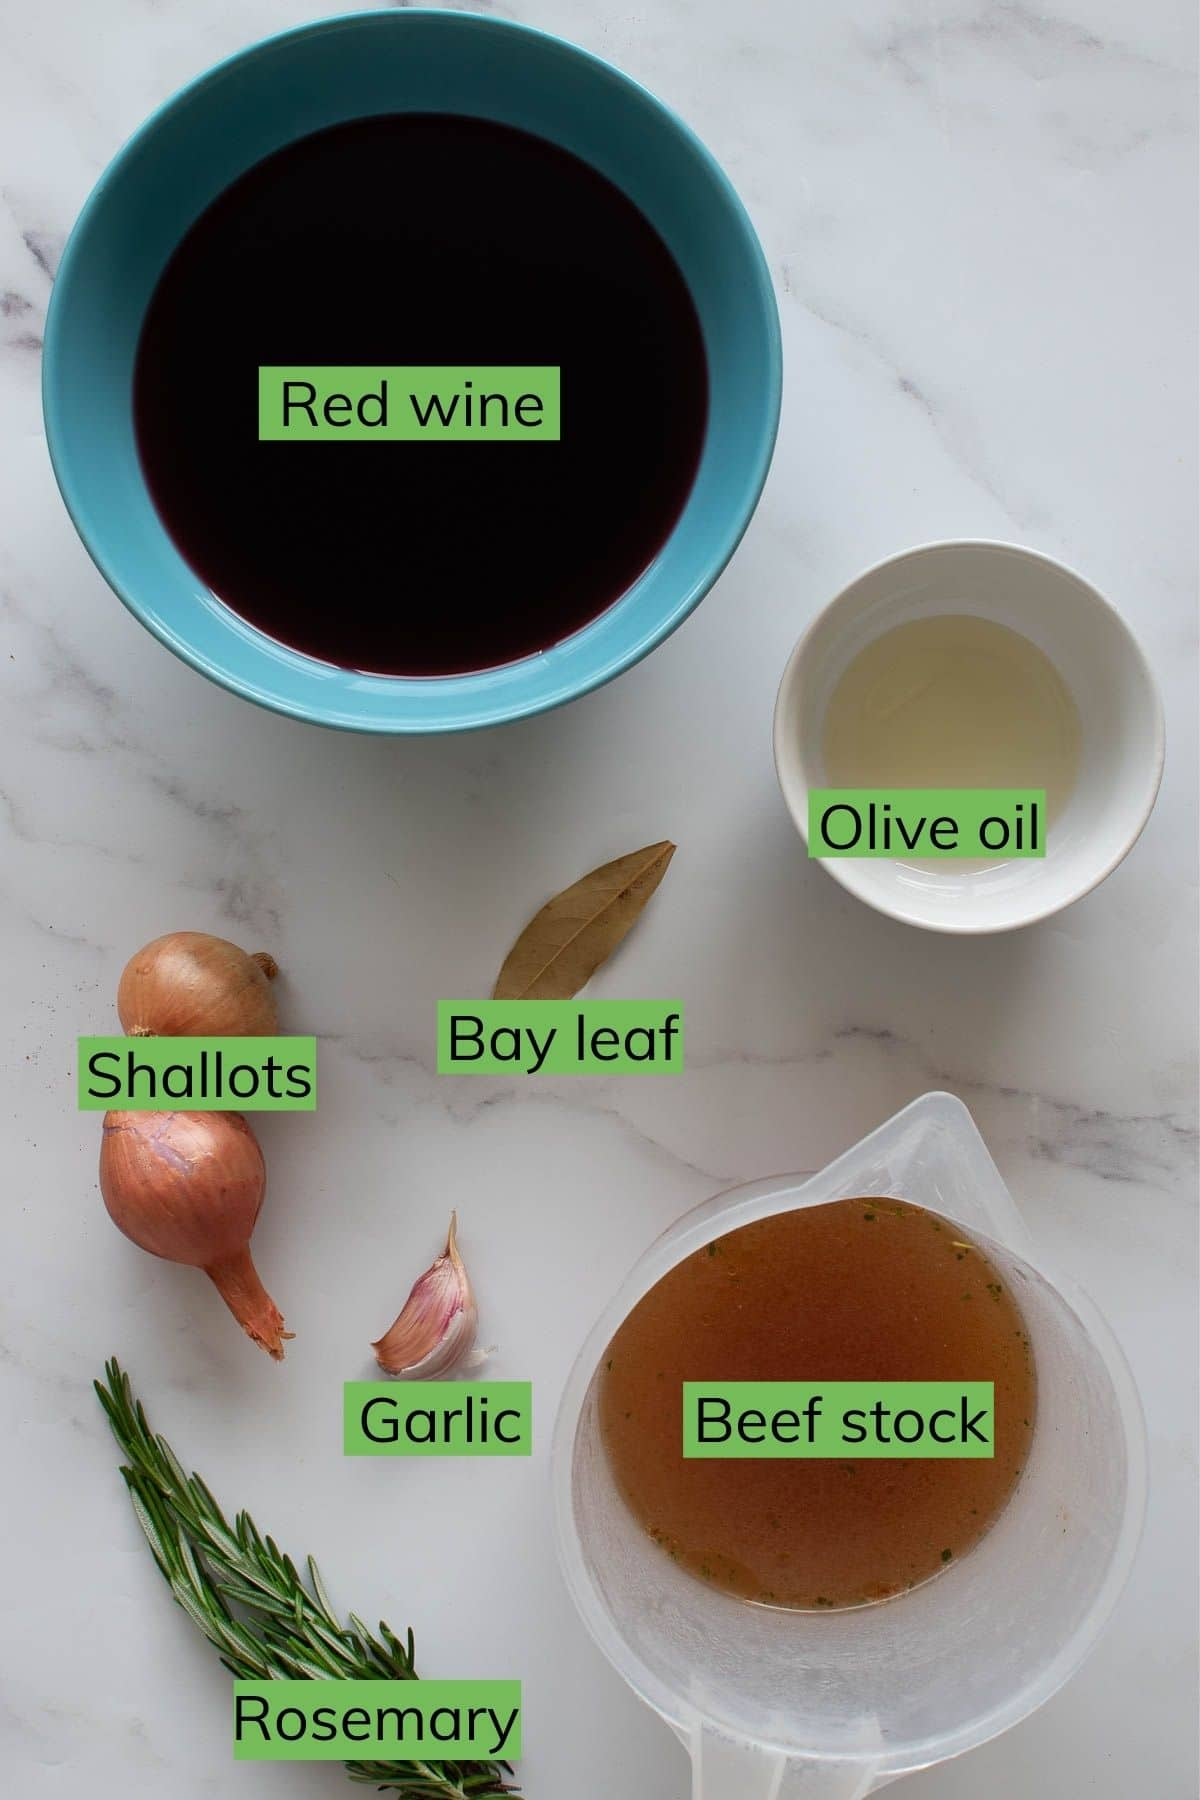 The ingredients for red wine jus laid out on a table.